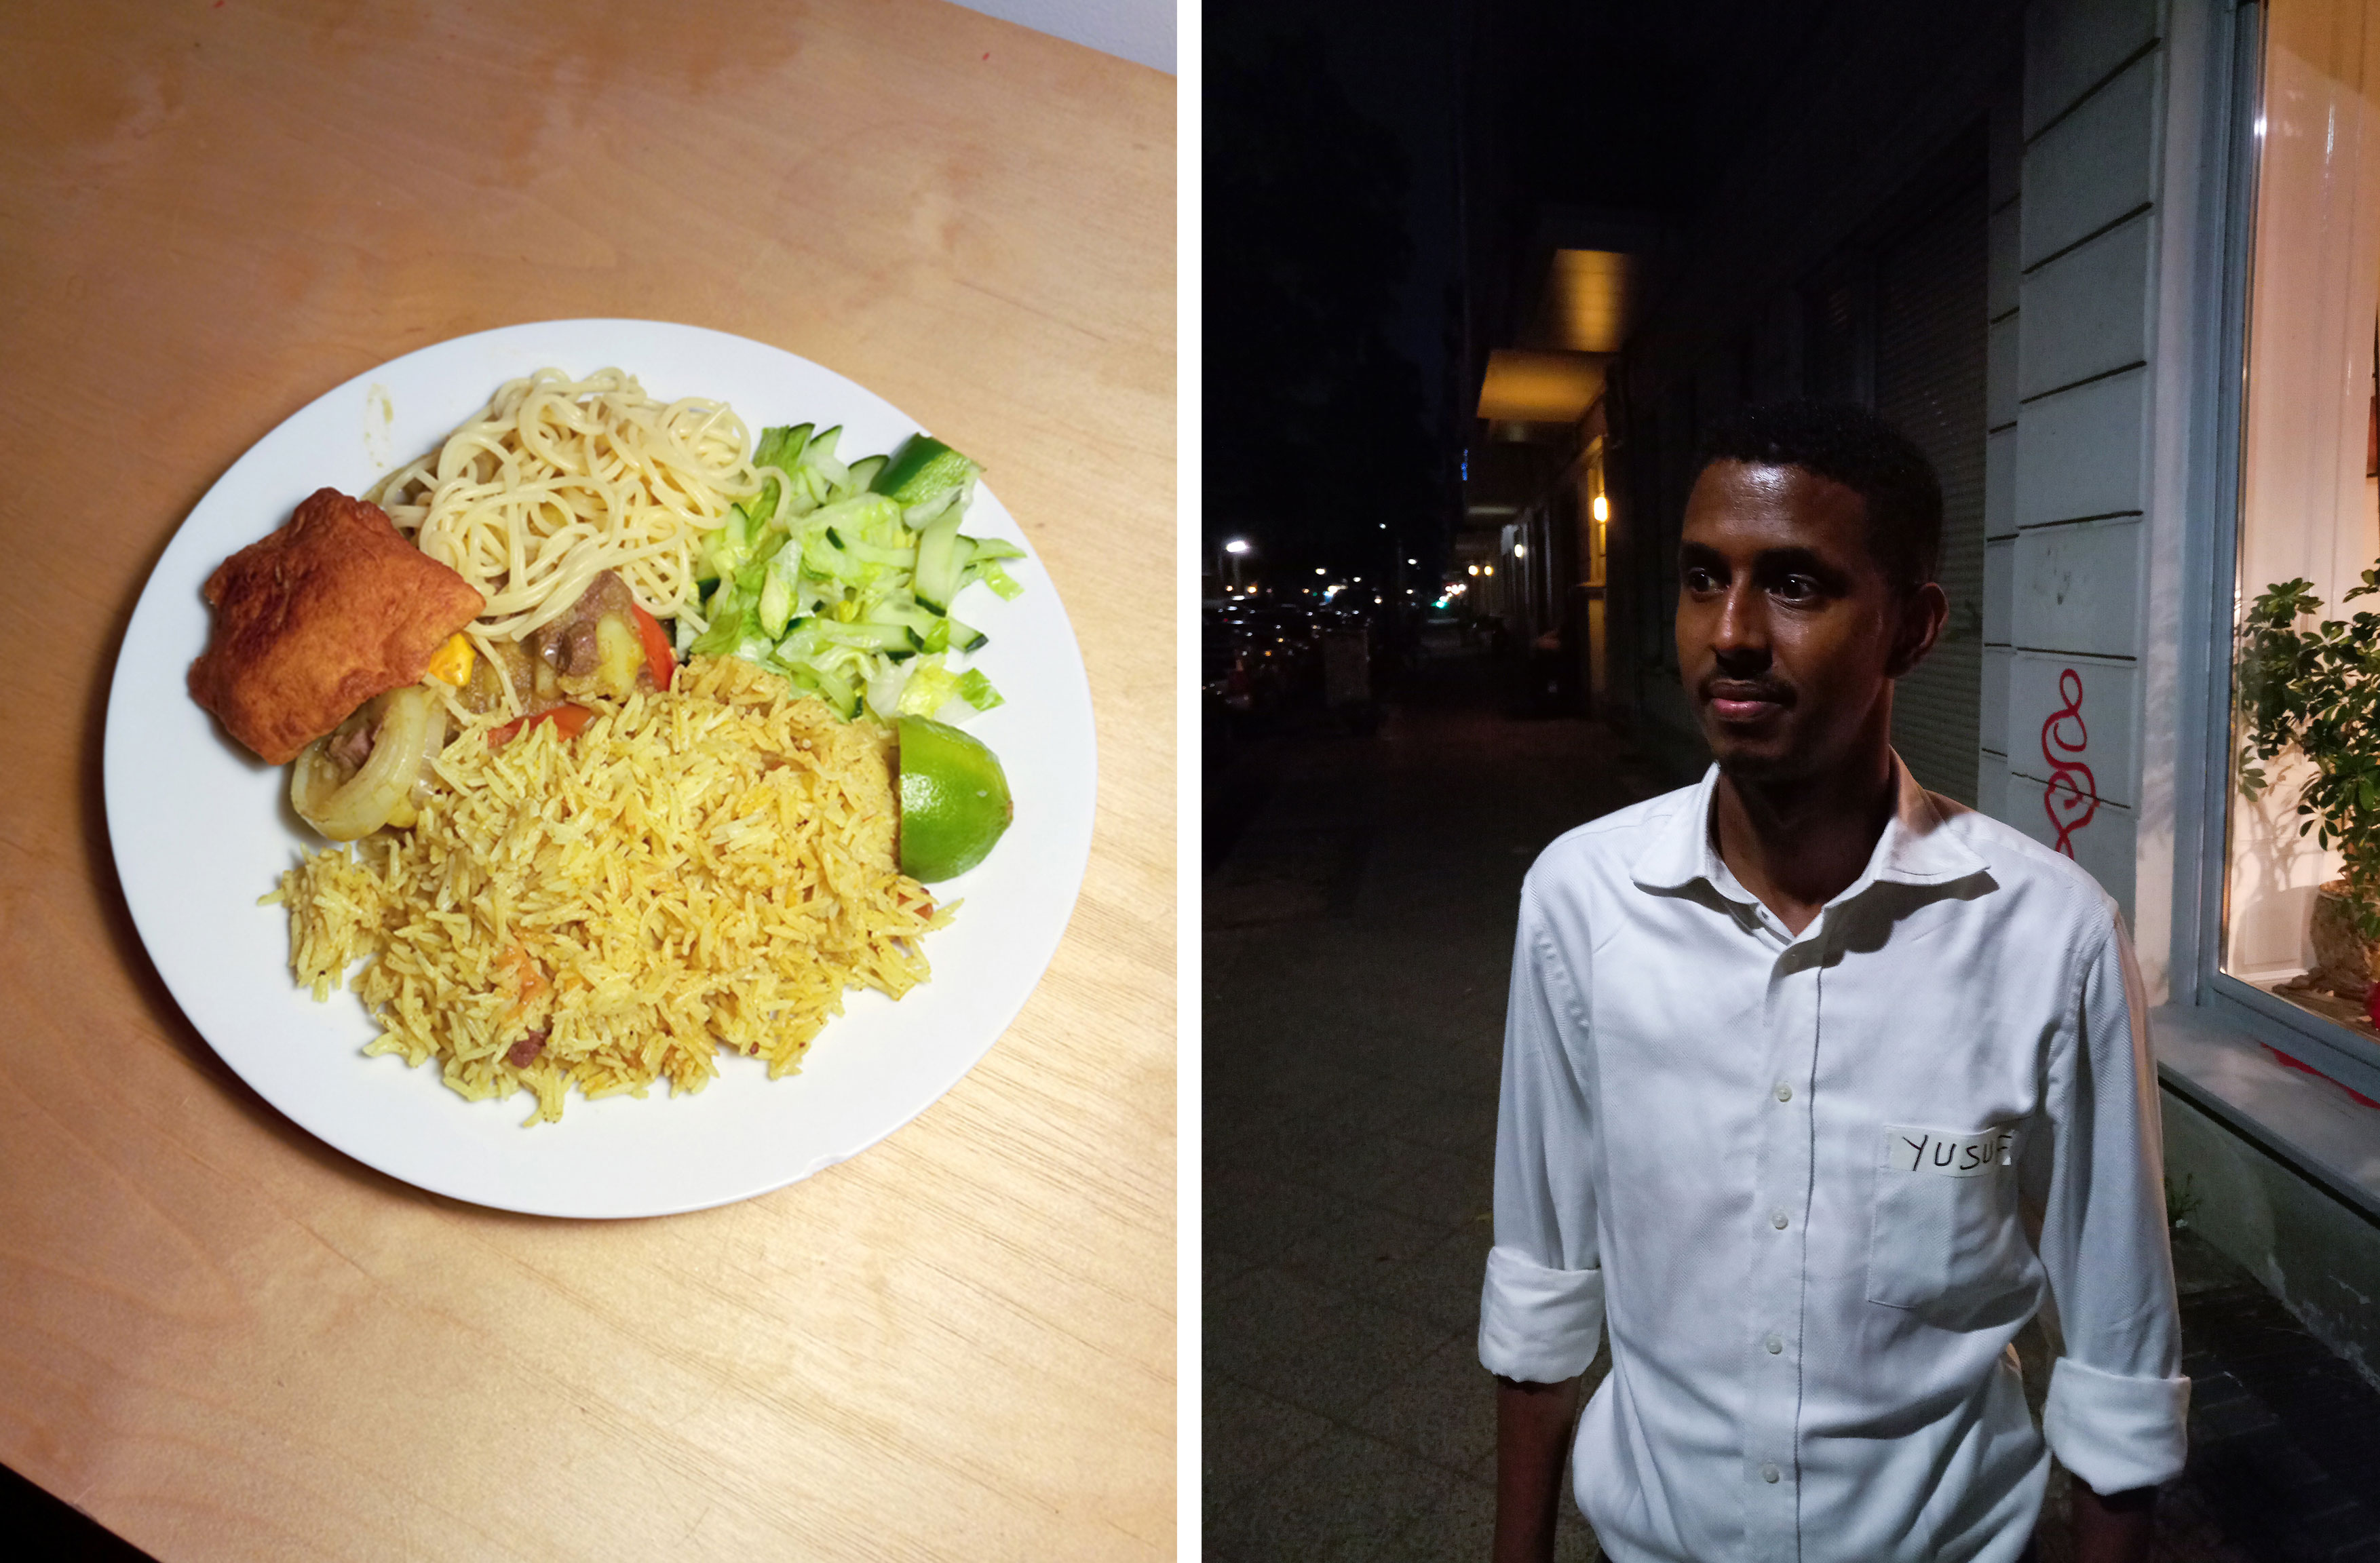 Our delicious dinner, and Yusuf.